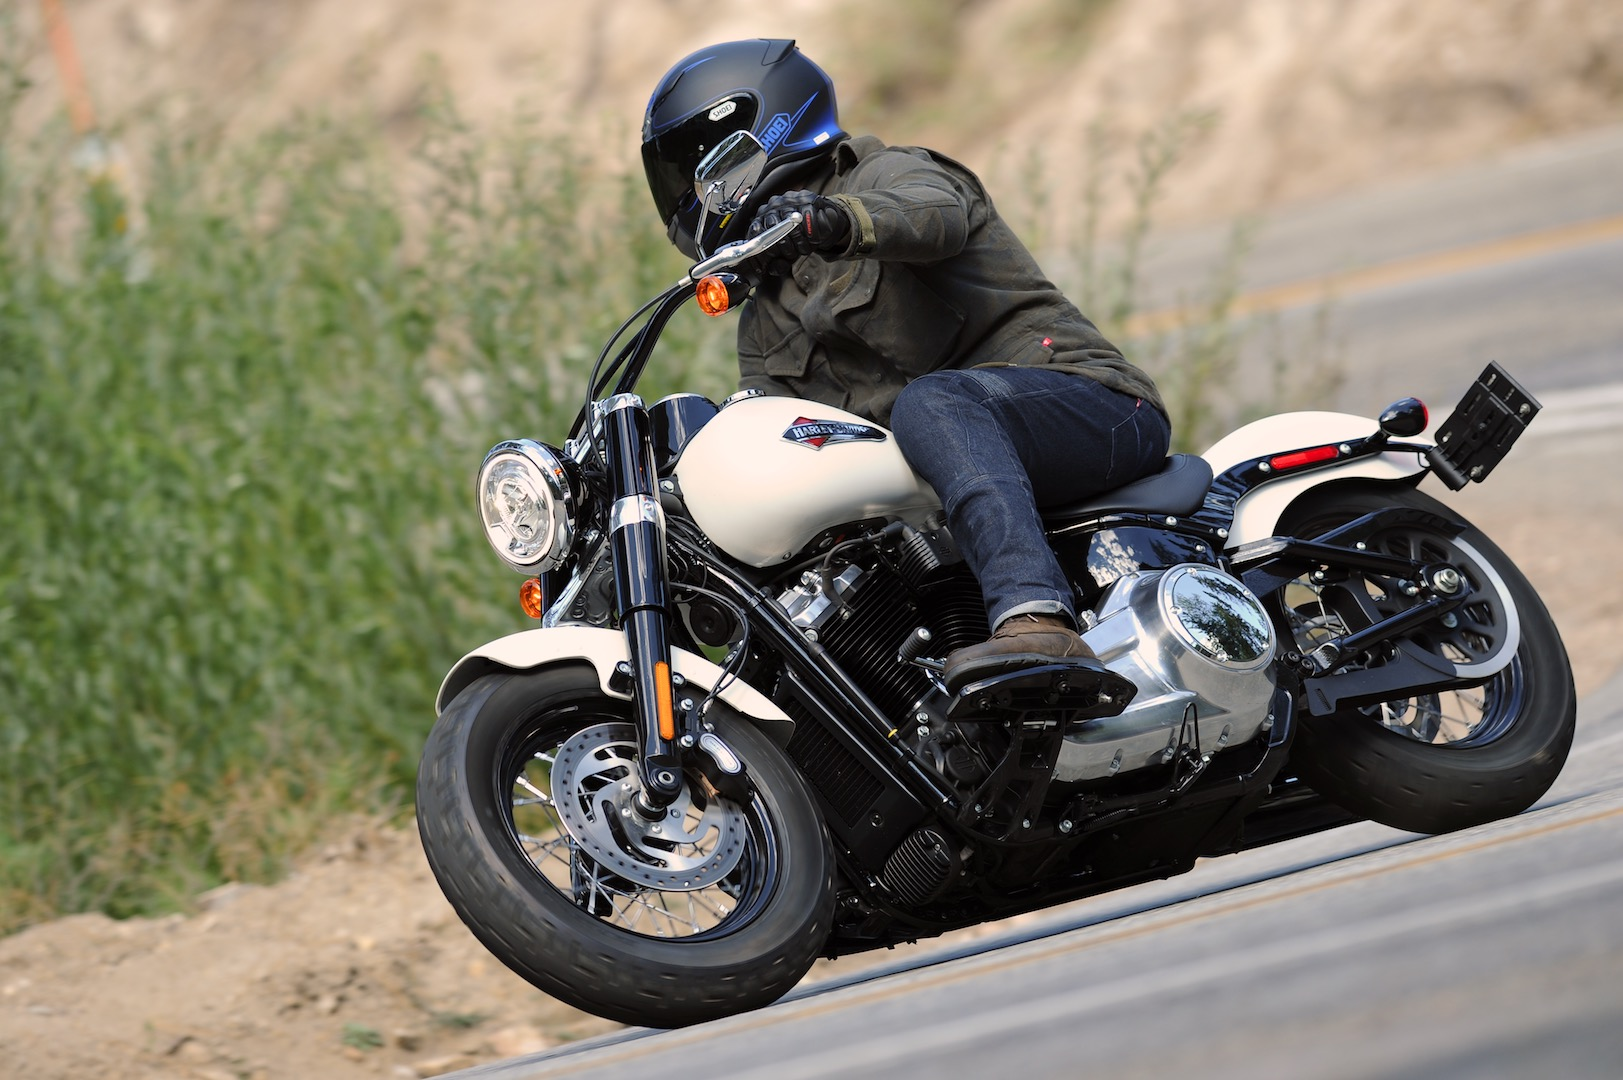 Harley Softail 2018 Harley Davidson Softail Slim Review 11 Fast Facts